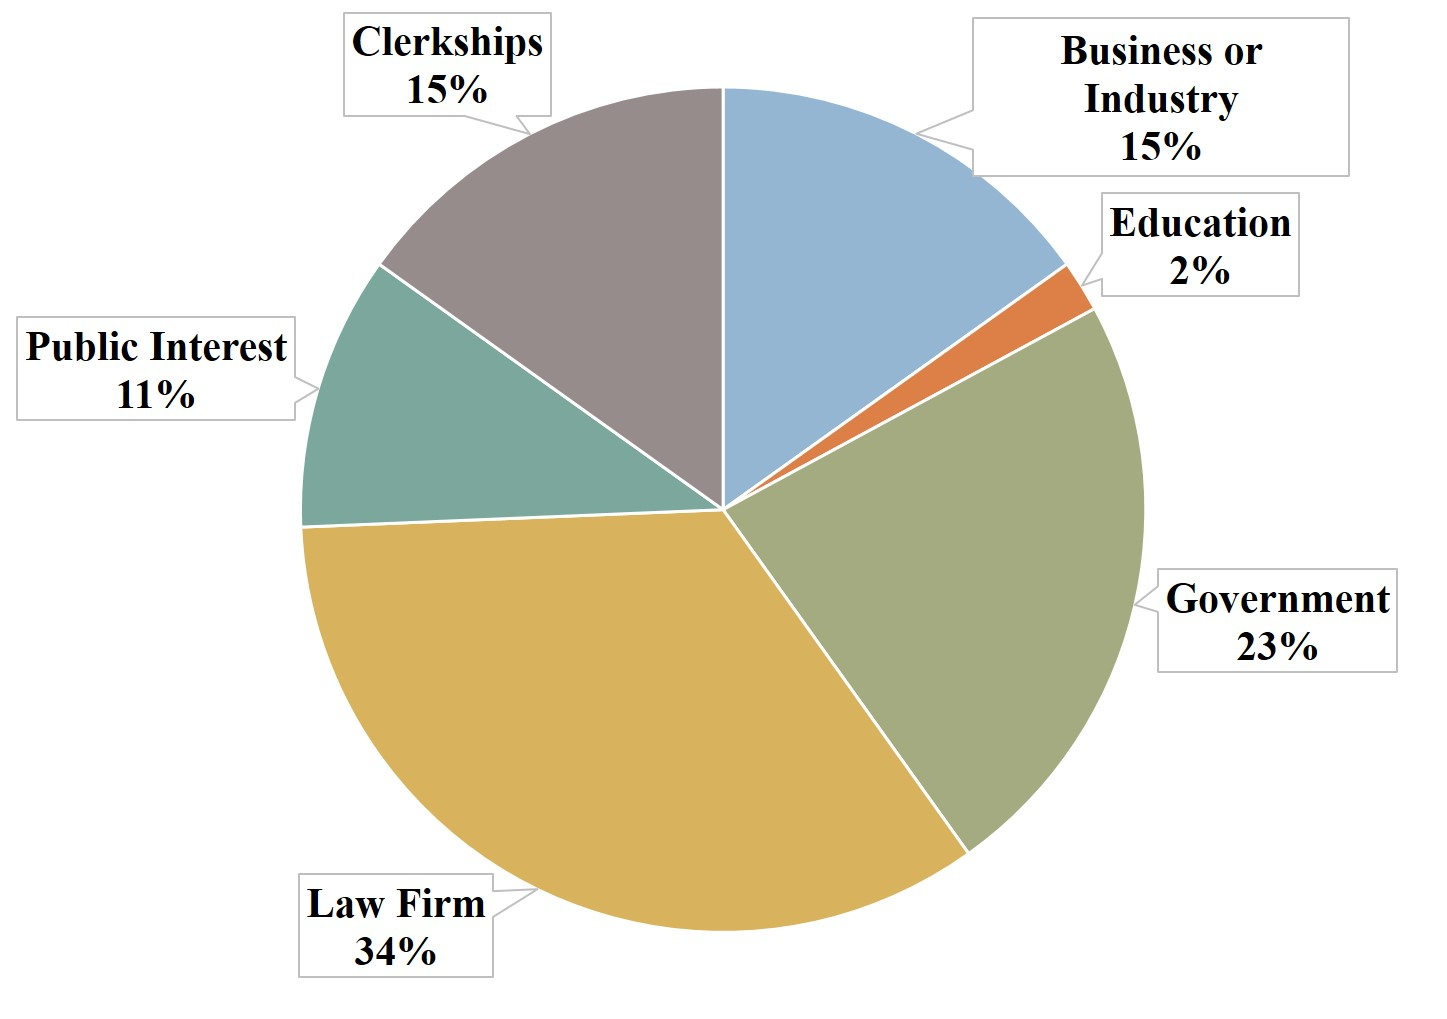 Number of graduates employed by sector in 2018: Business or Industry: 46  Education: 6 Government: 70 Law Firm: 104Public Interest: 32 Clerkships: 46